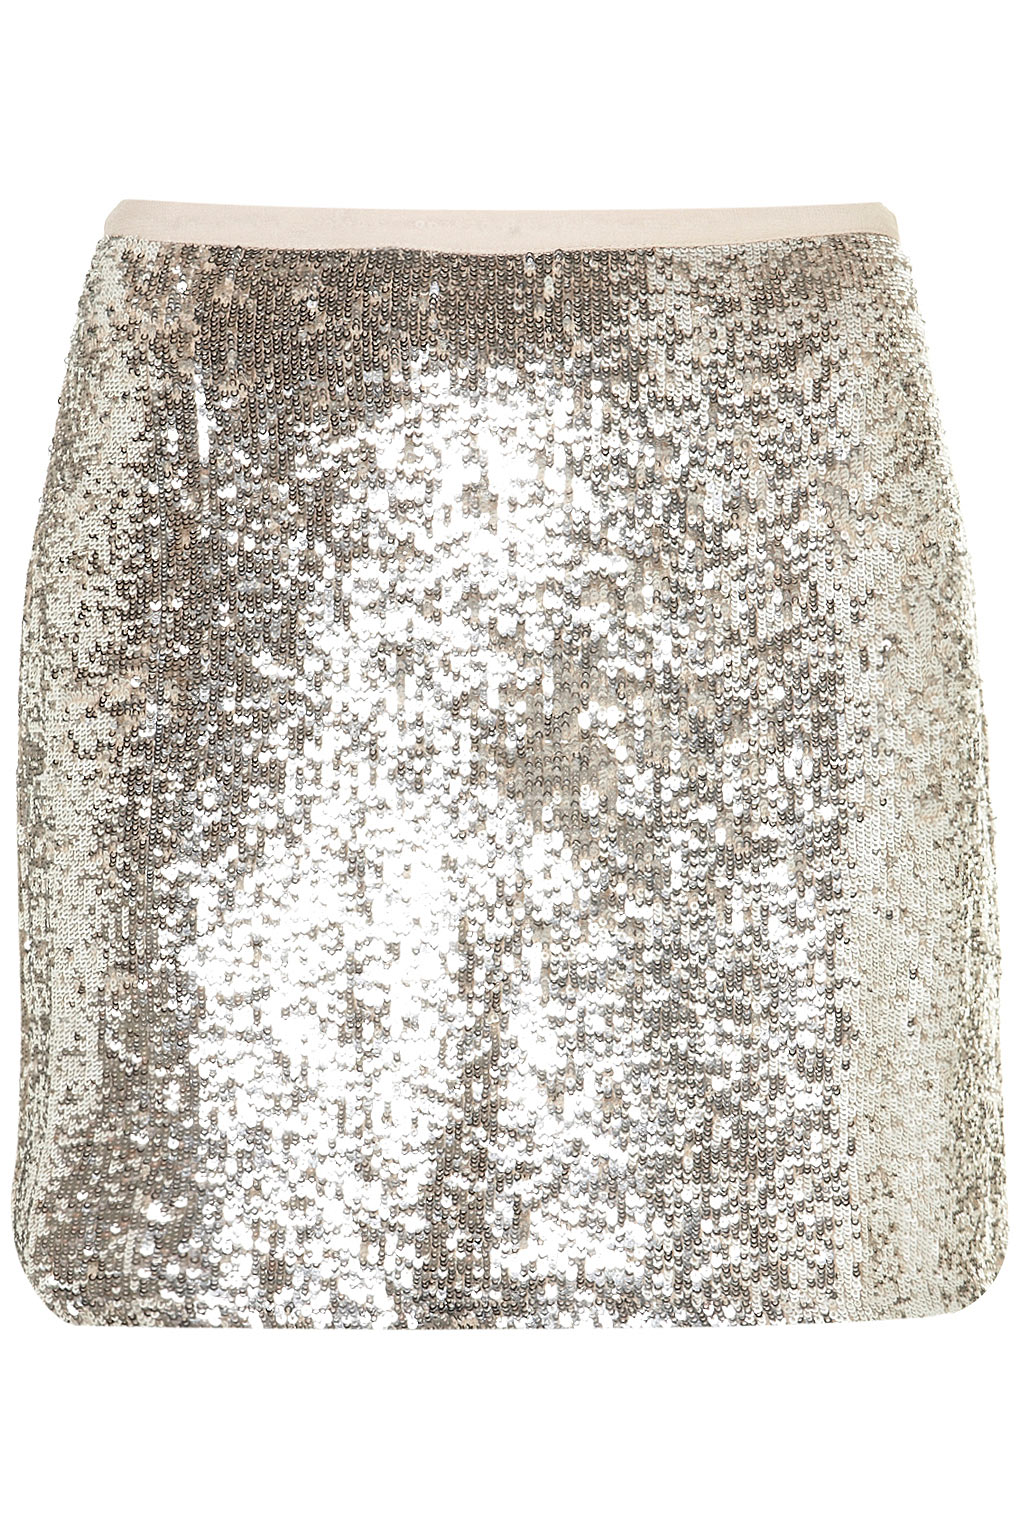 Topshop Silver Sequin Mini Skirt in Silver | Lyst